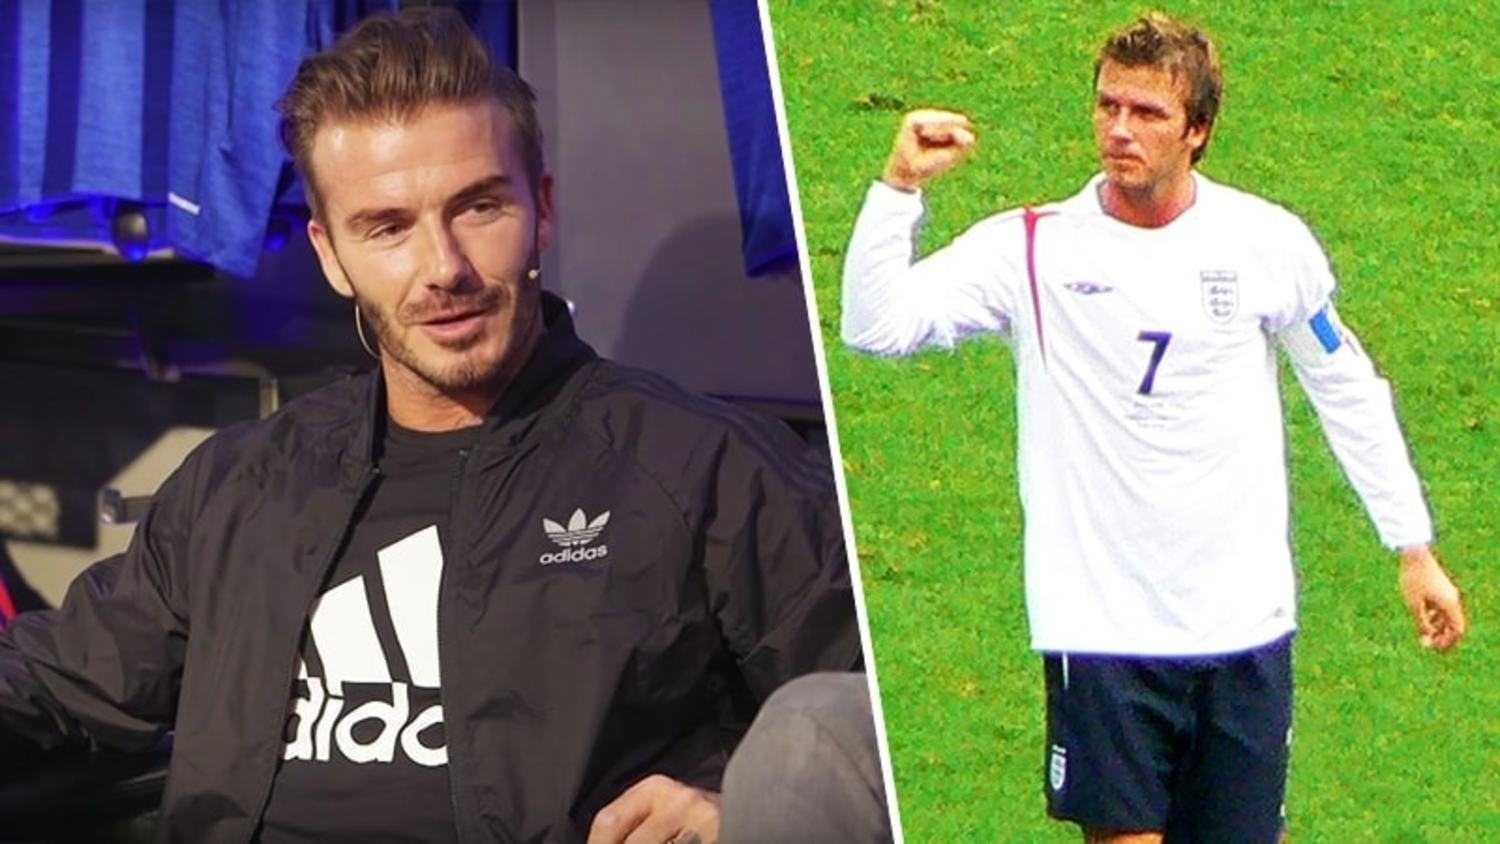 David Beckham Discusses England's Chance at 2016 Euros